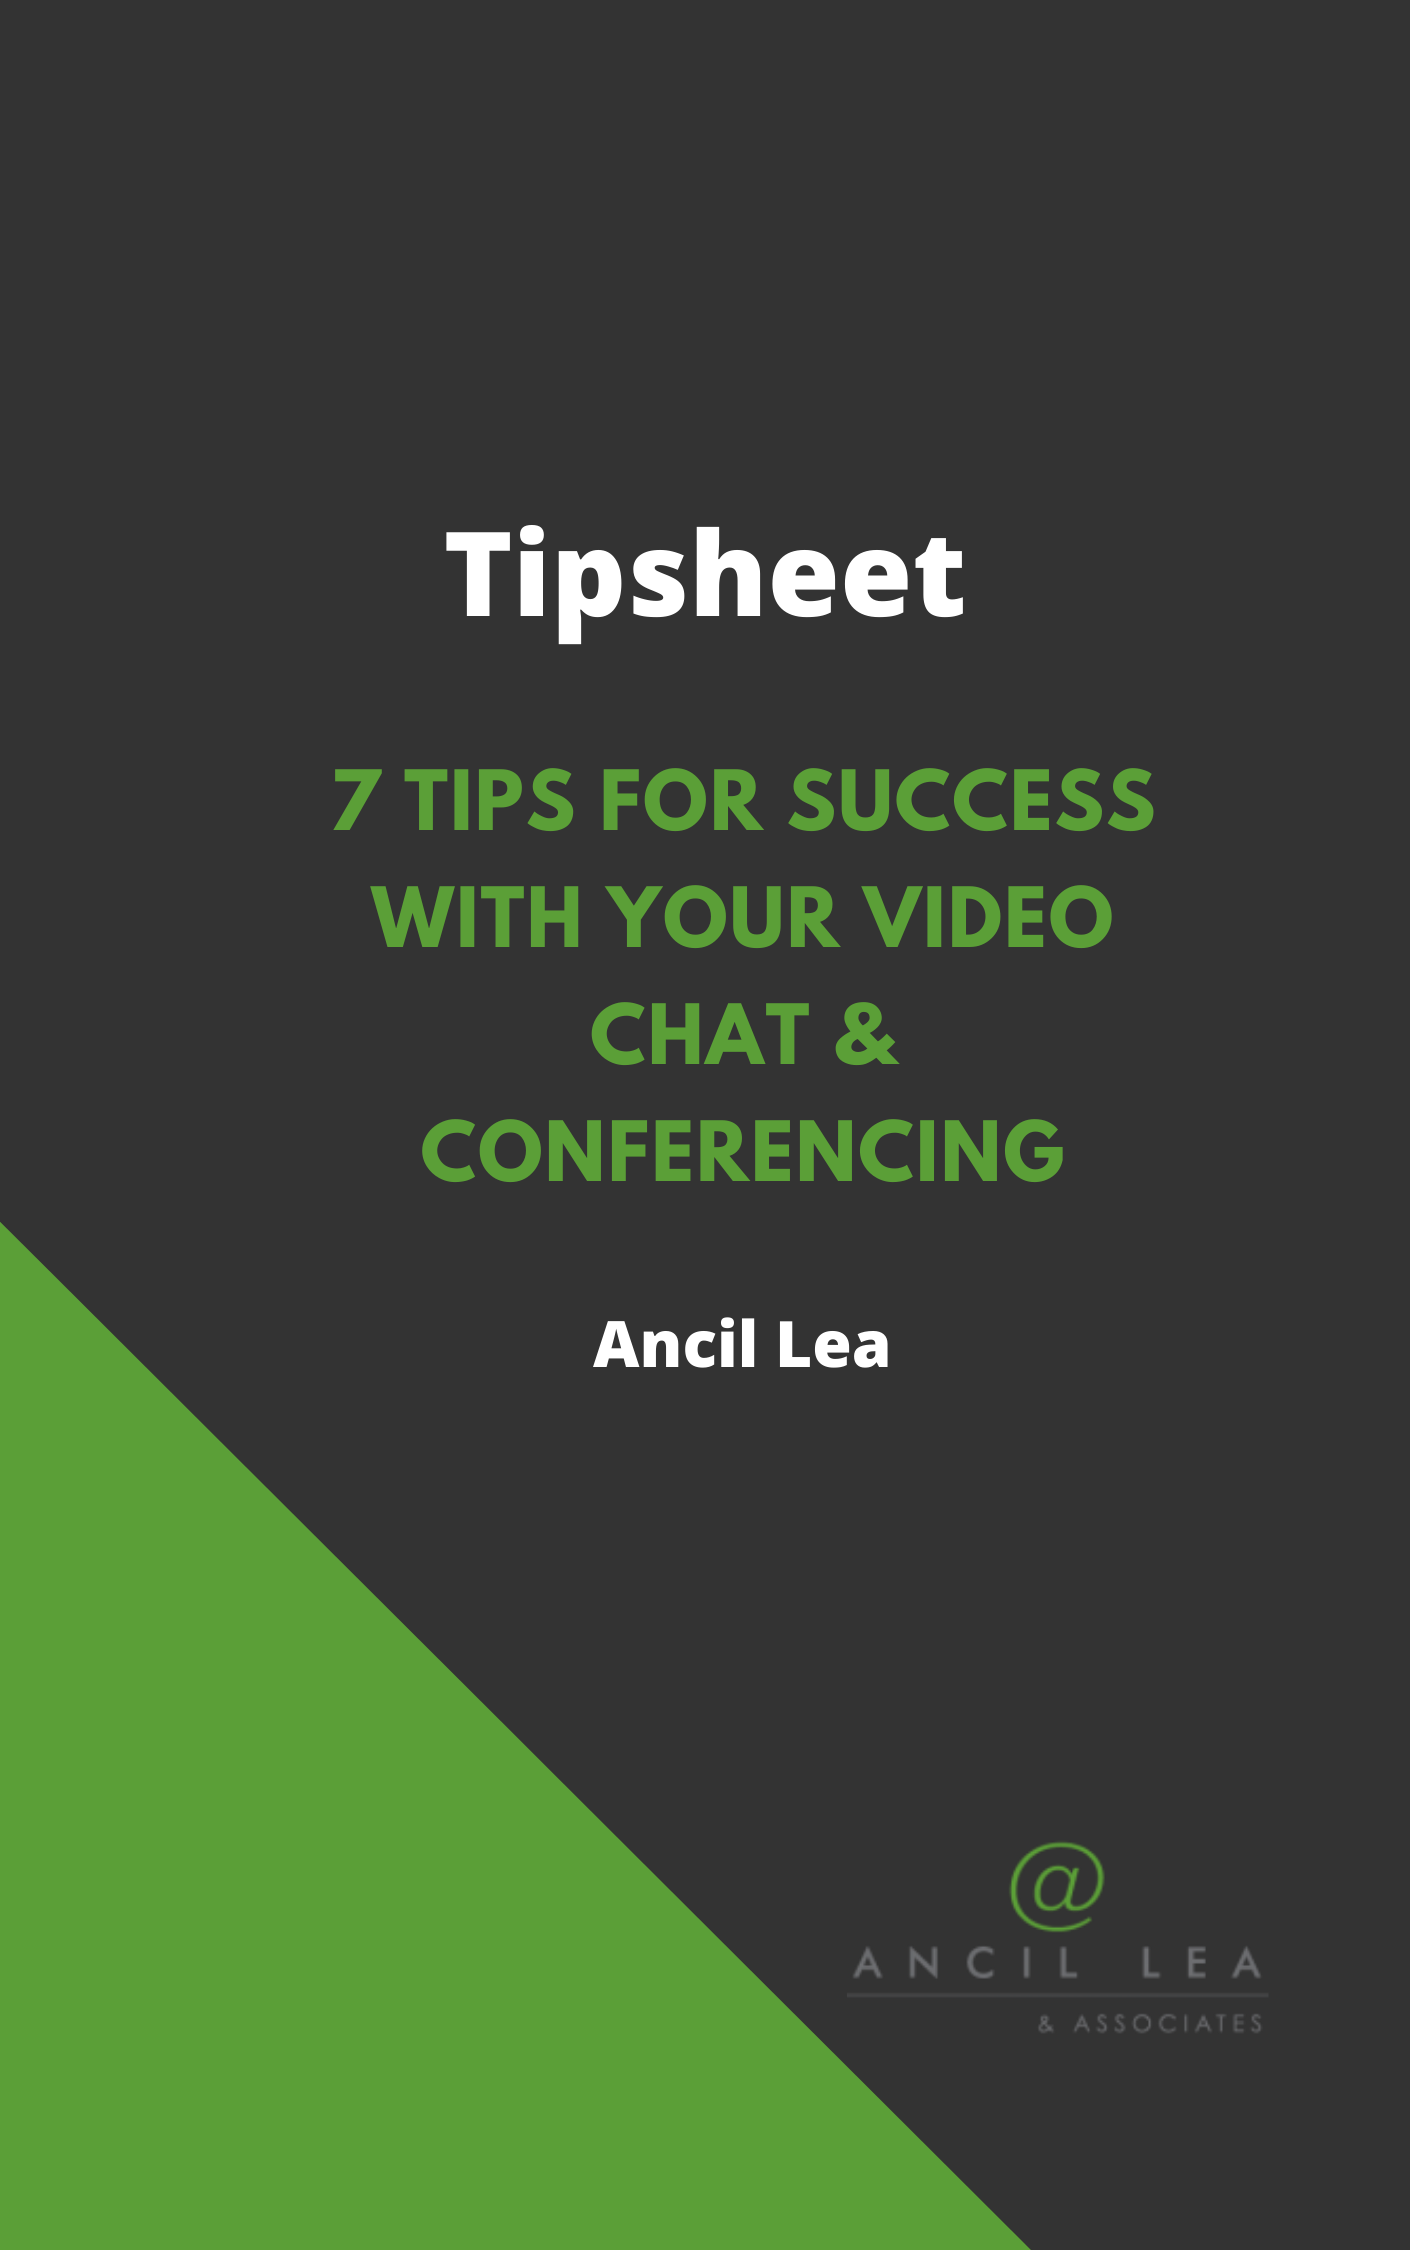 7 Tips for success with your Video Chat - Conferencing